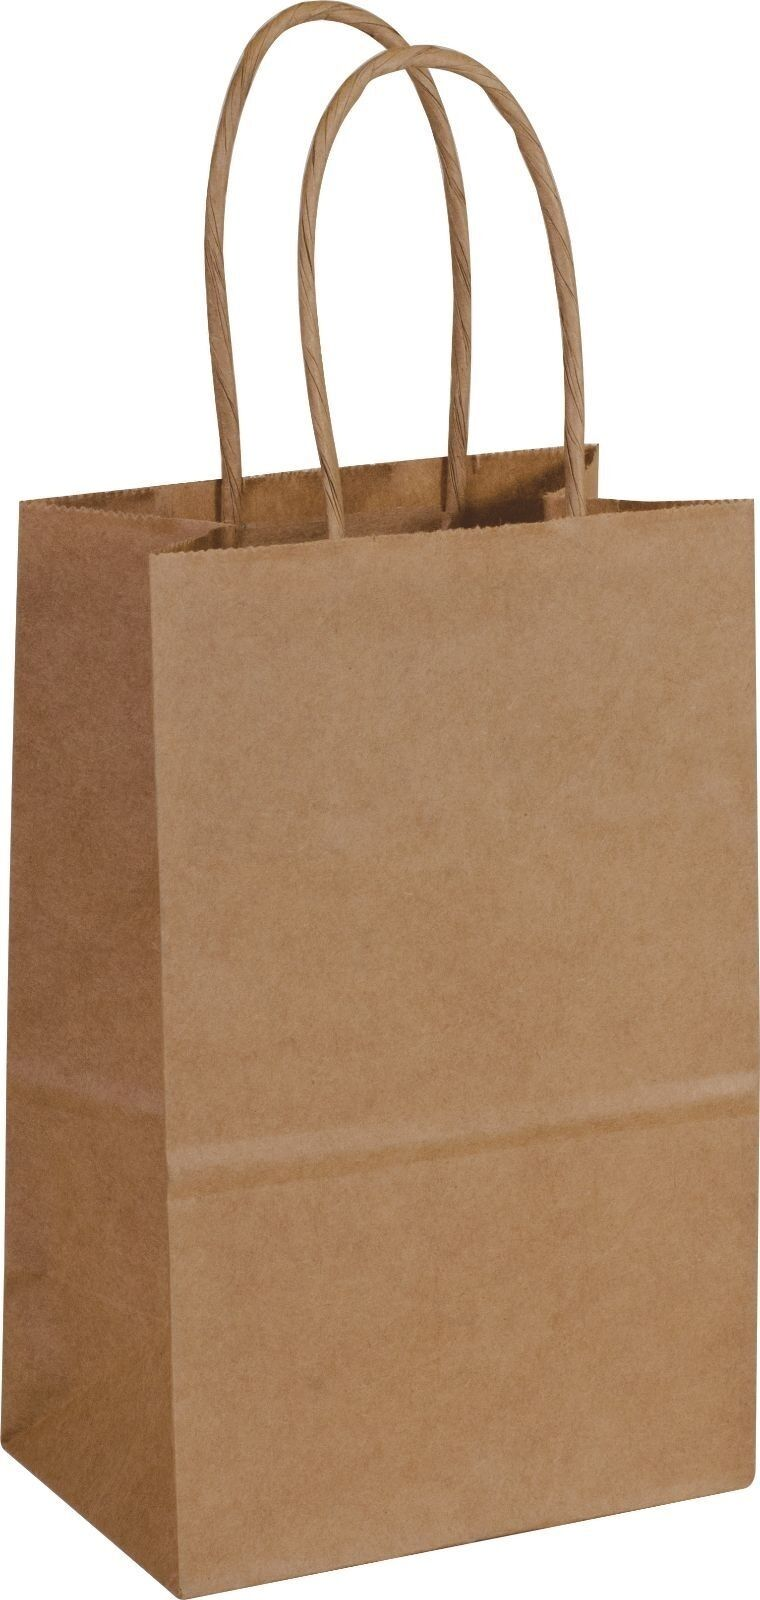 Case of 250 Kraft Paper Bags Shoppers Mini Cub 14-8 5 1 4x3 1 2x8 1 4